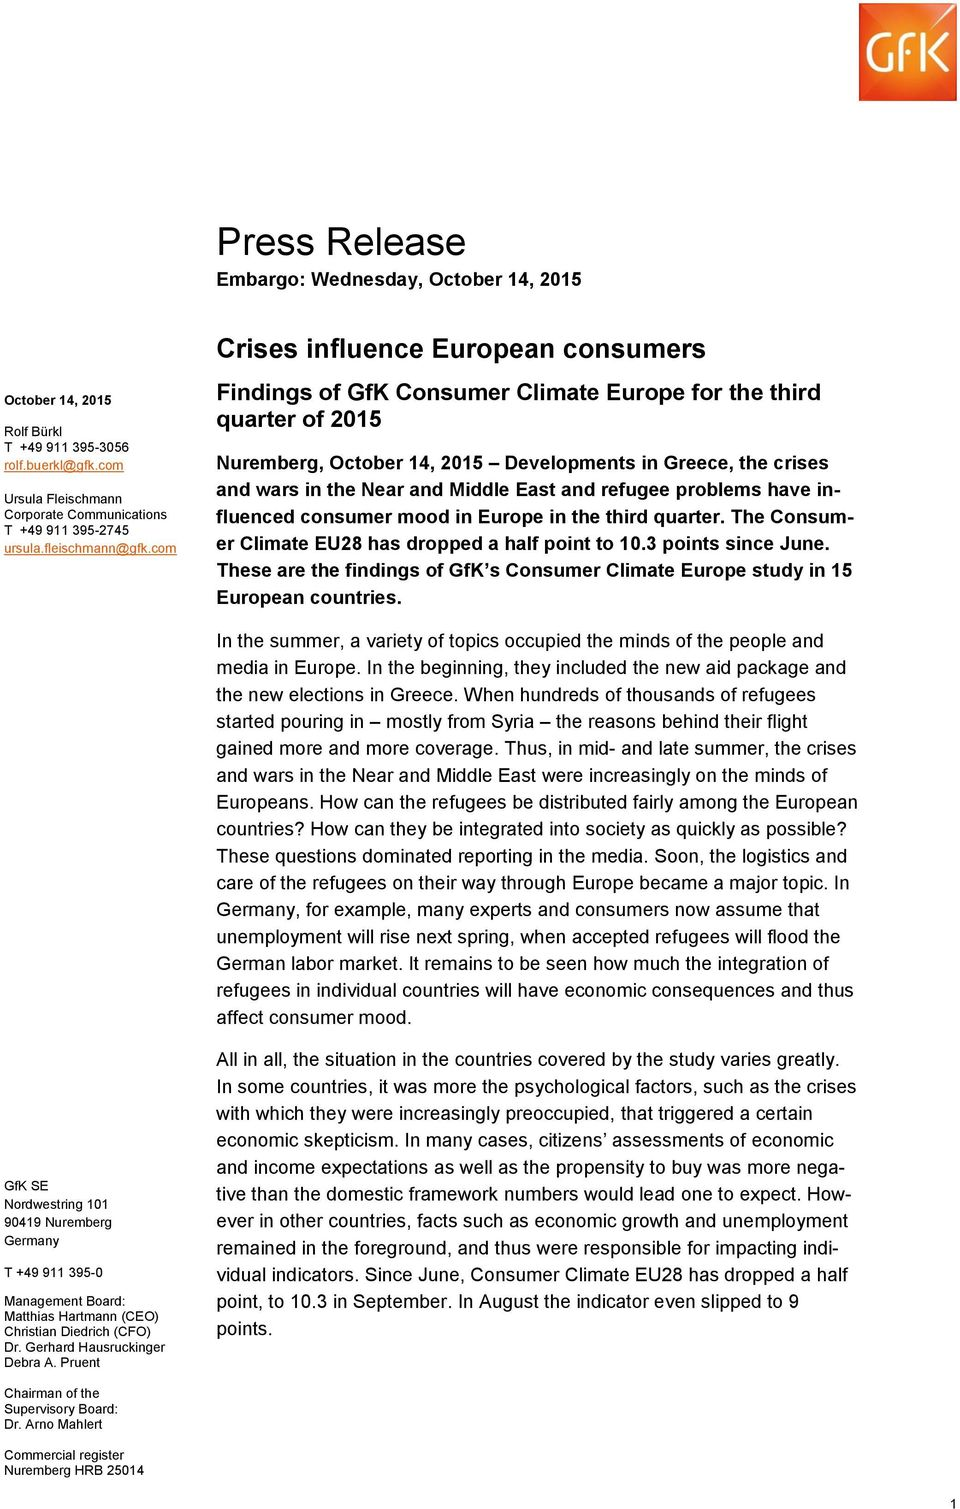 com Crises influence European consumers Findings of GfK Consumer Climate Europe for the third quarter of 2015 Nuremberg, October 14, 2015 Developments in Greece, the crises and wars in the Near and